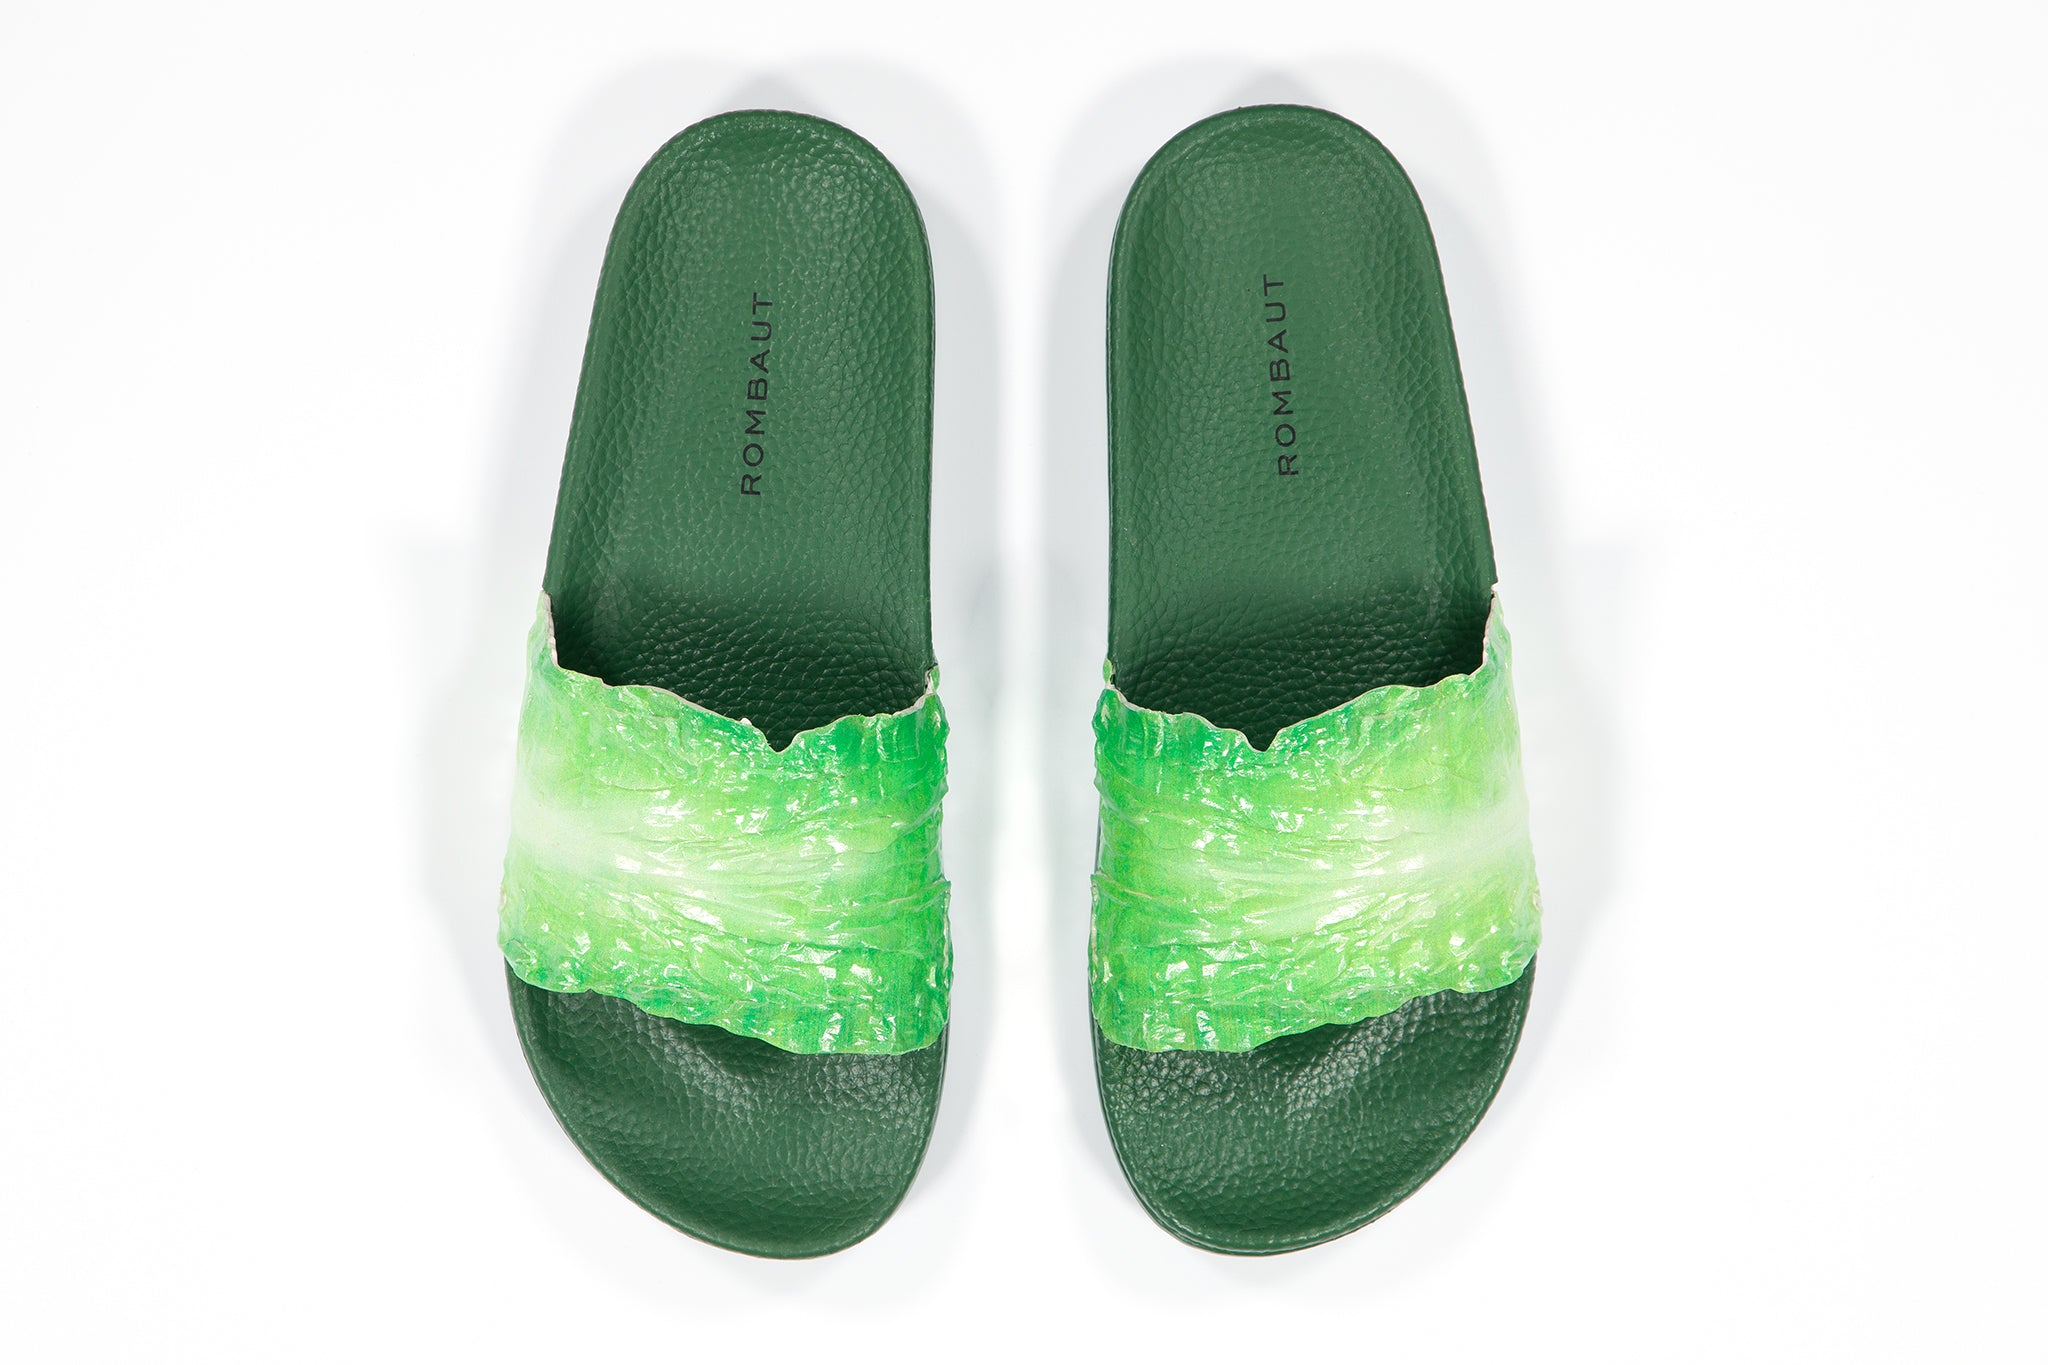 LETTUCE SLIDES - LIMITED EDITION